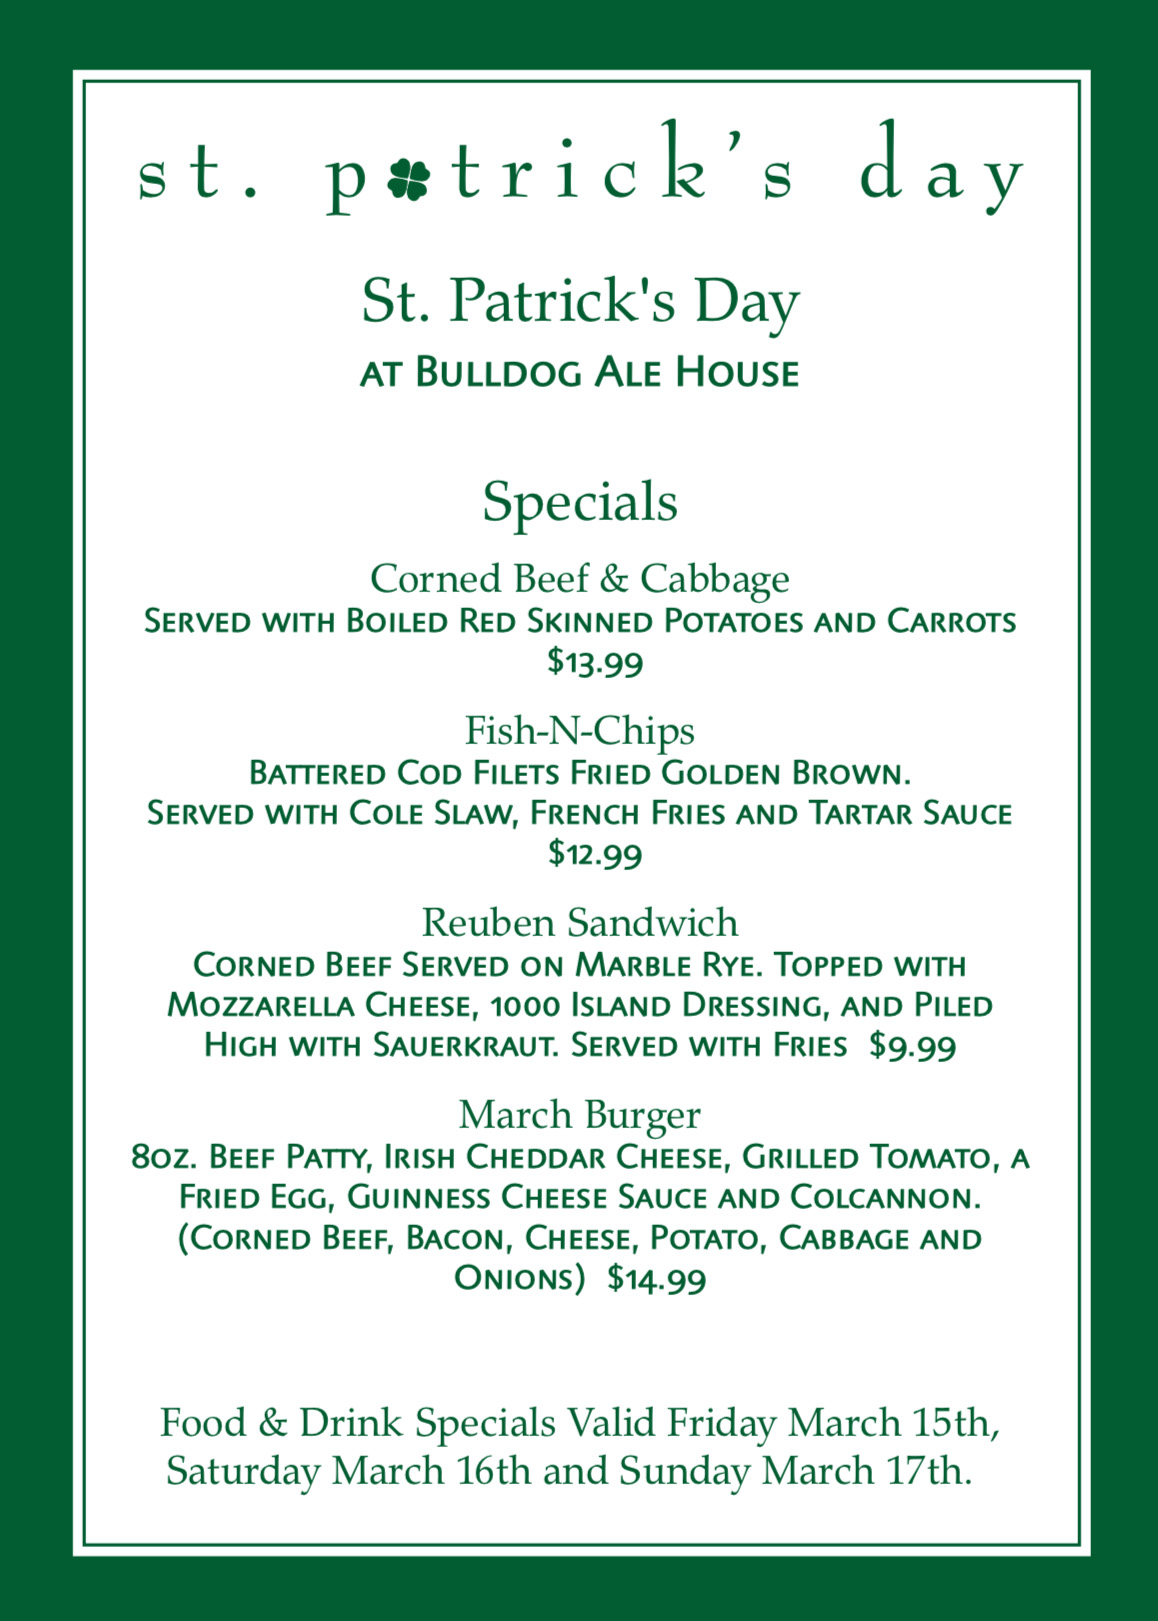 St. Patrick's Day Specials